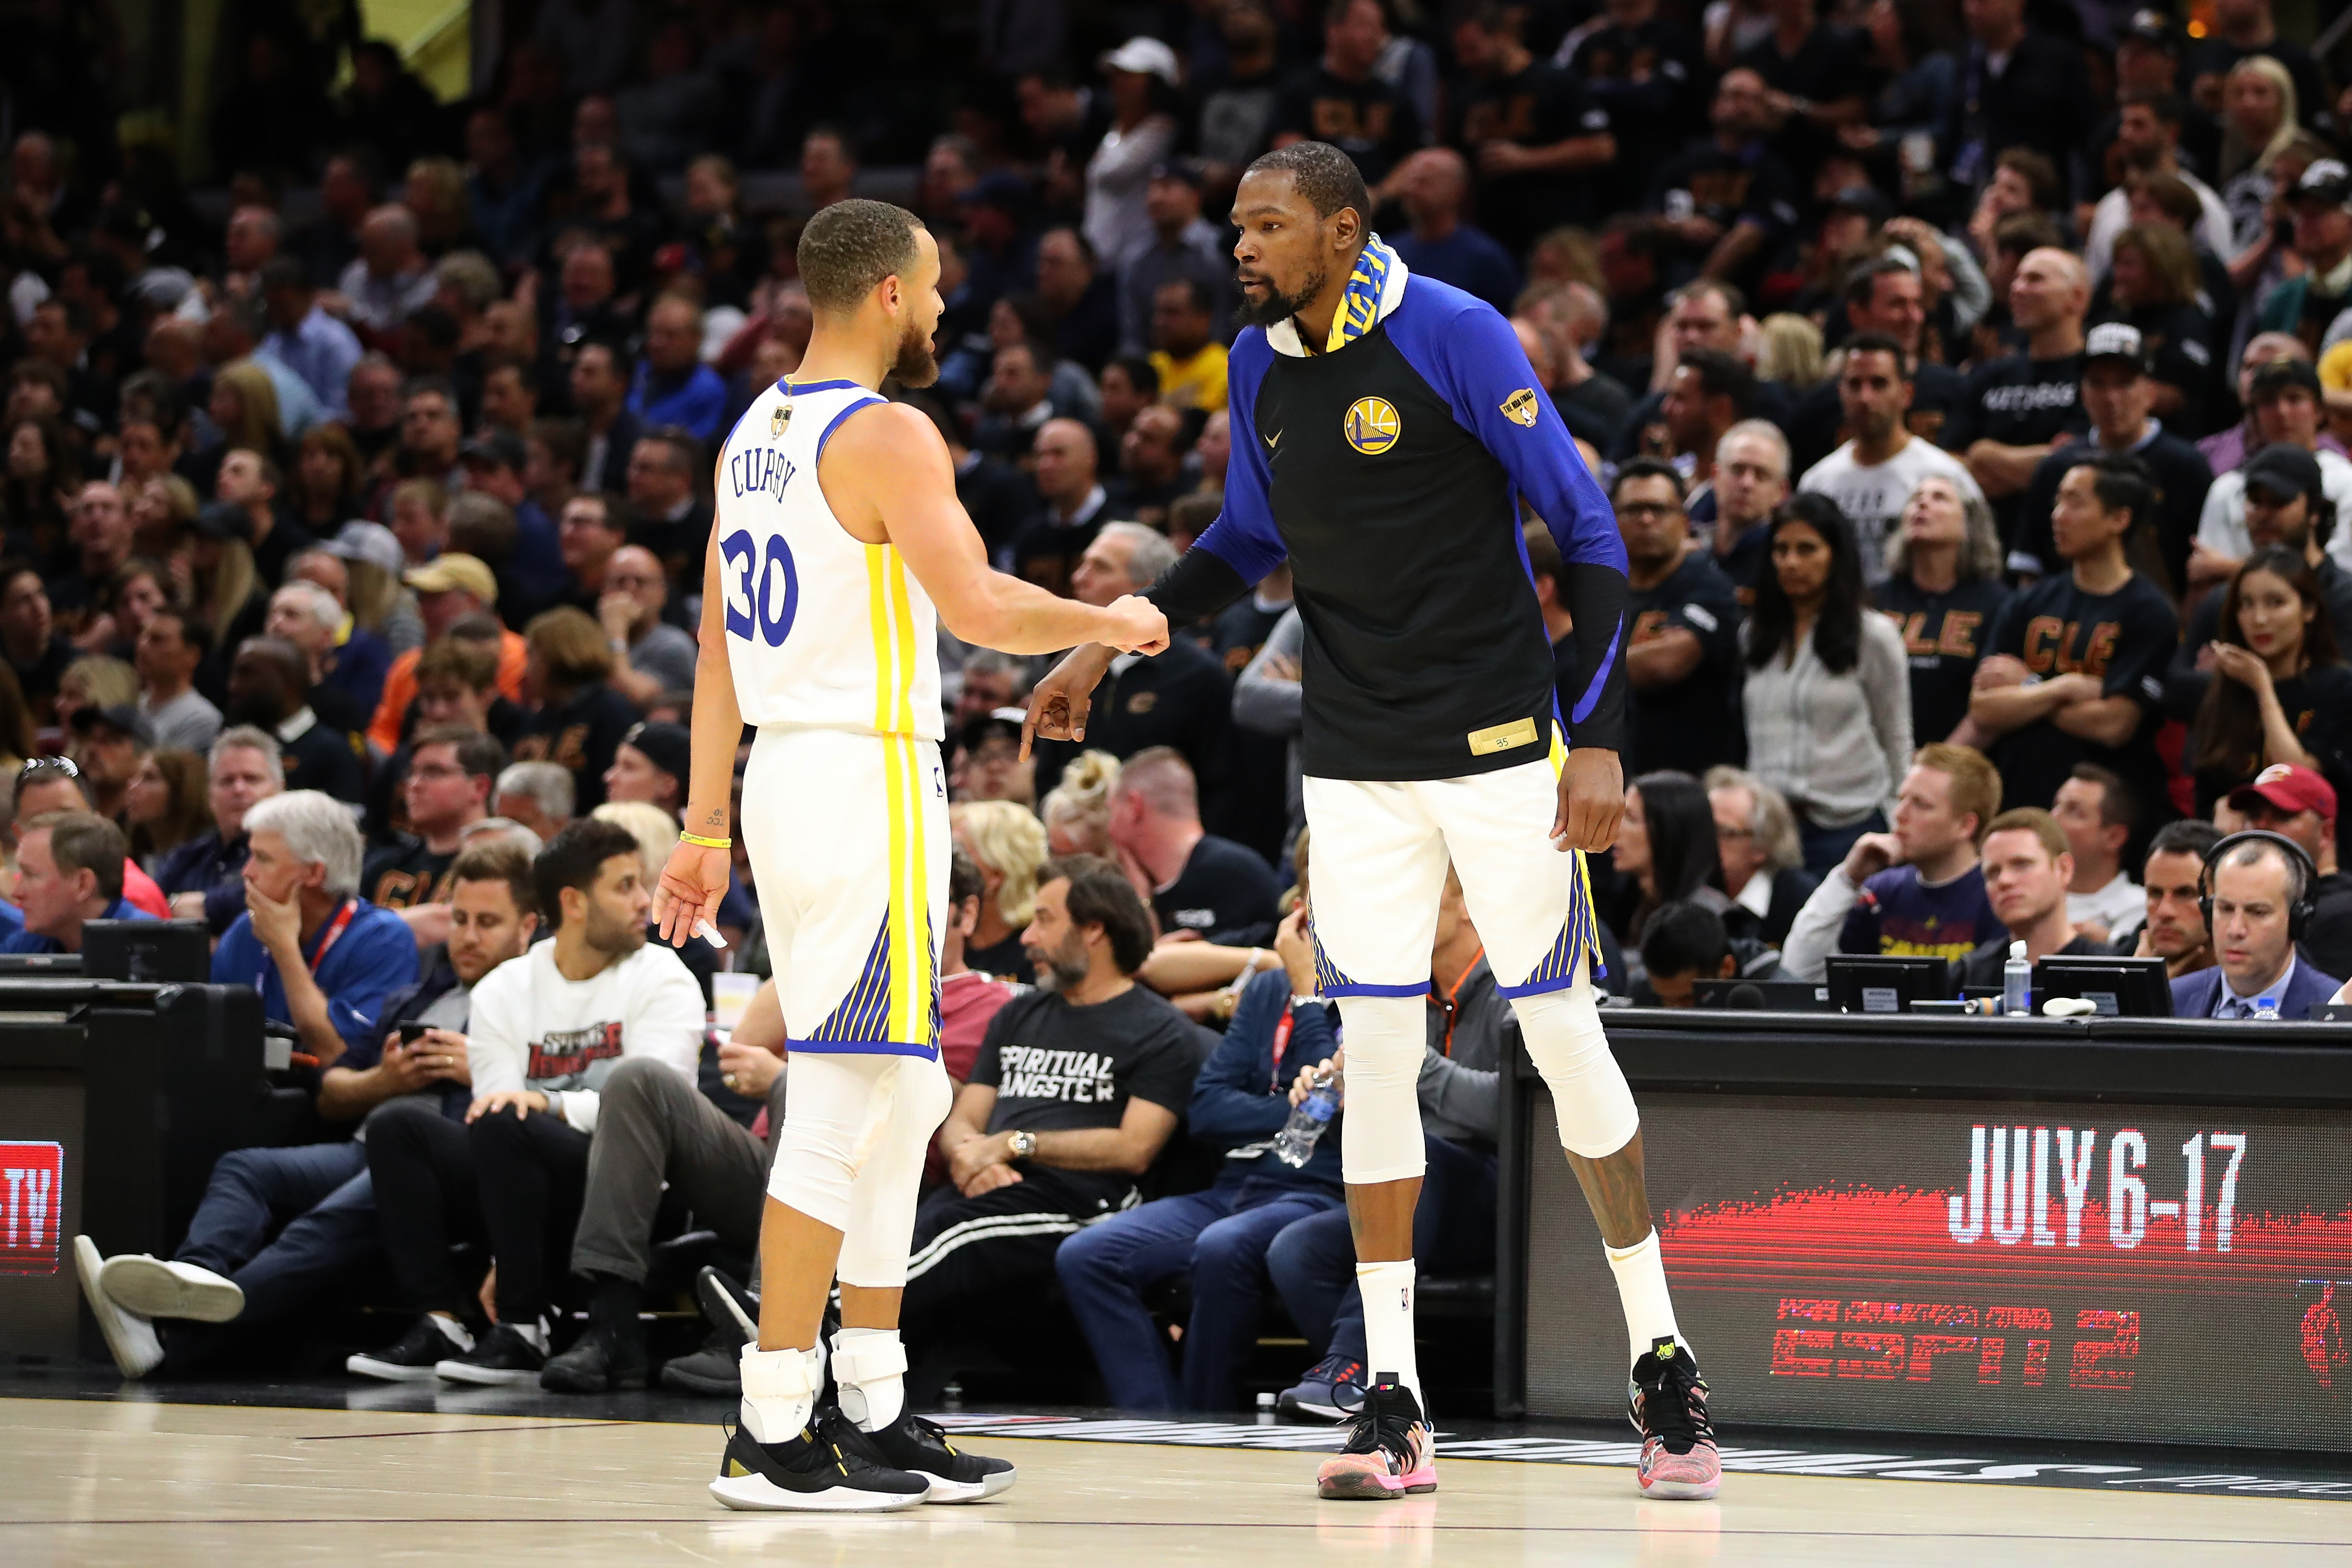 0dde8b59174 Kevin Durant vs. Stephen Curry for MVP was the only NBA Finals suspense  left. Durant won